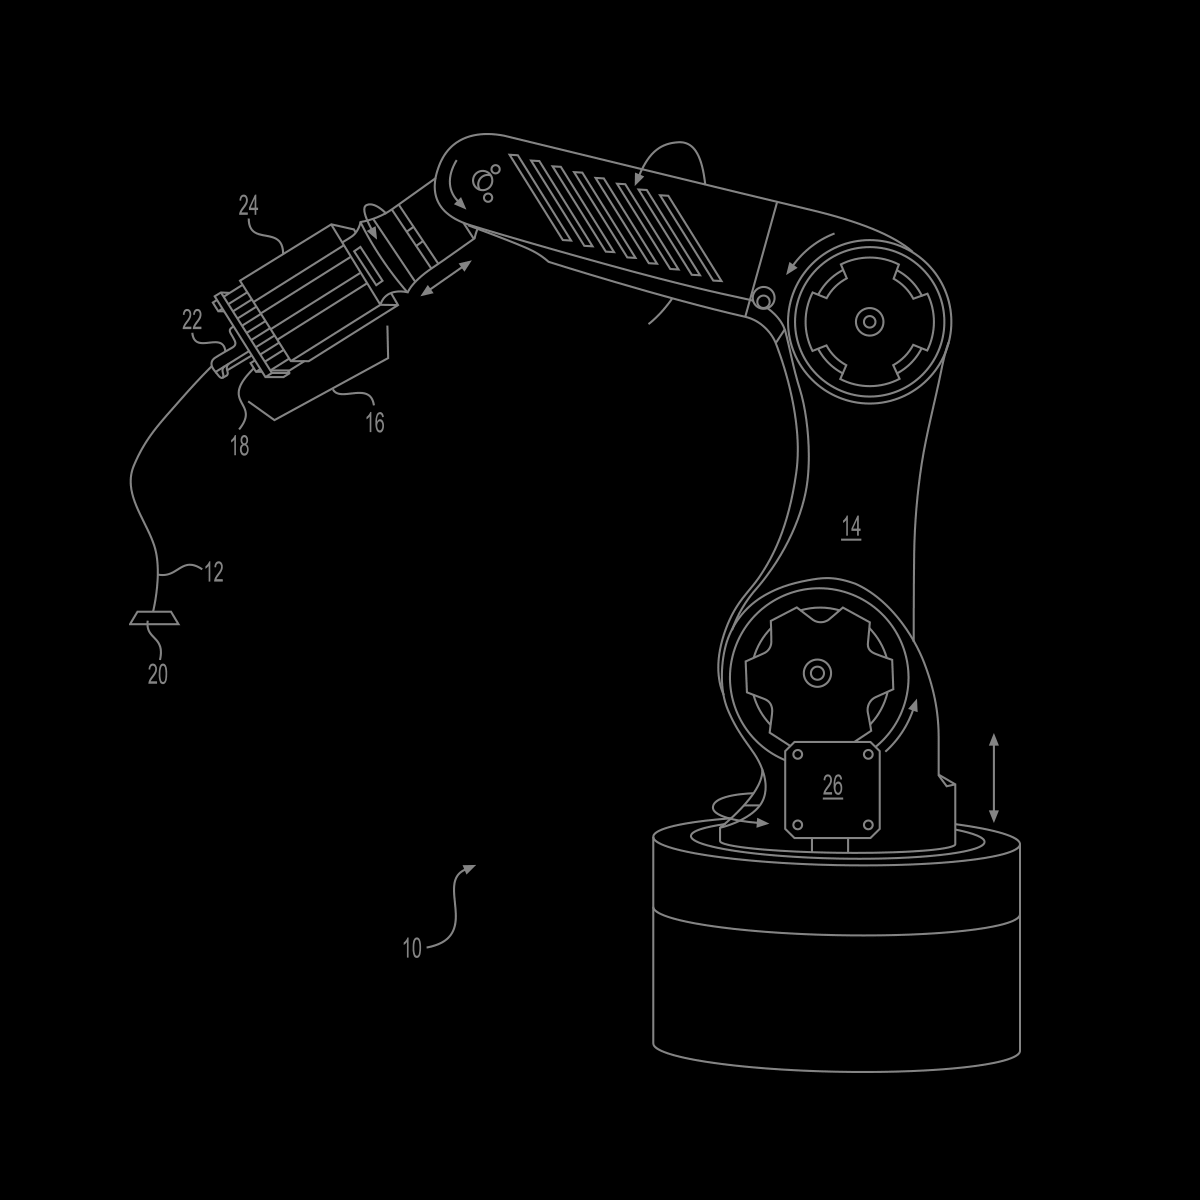 Patent illustration of robot arm printing strand of fiber.